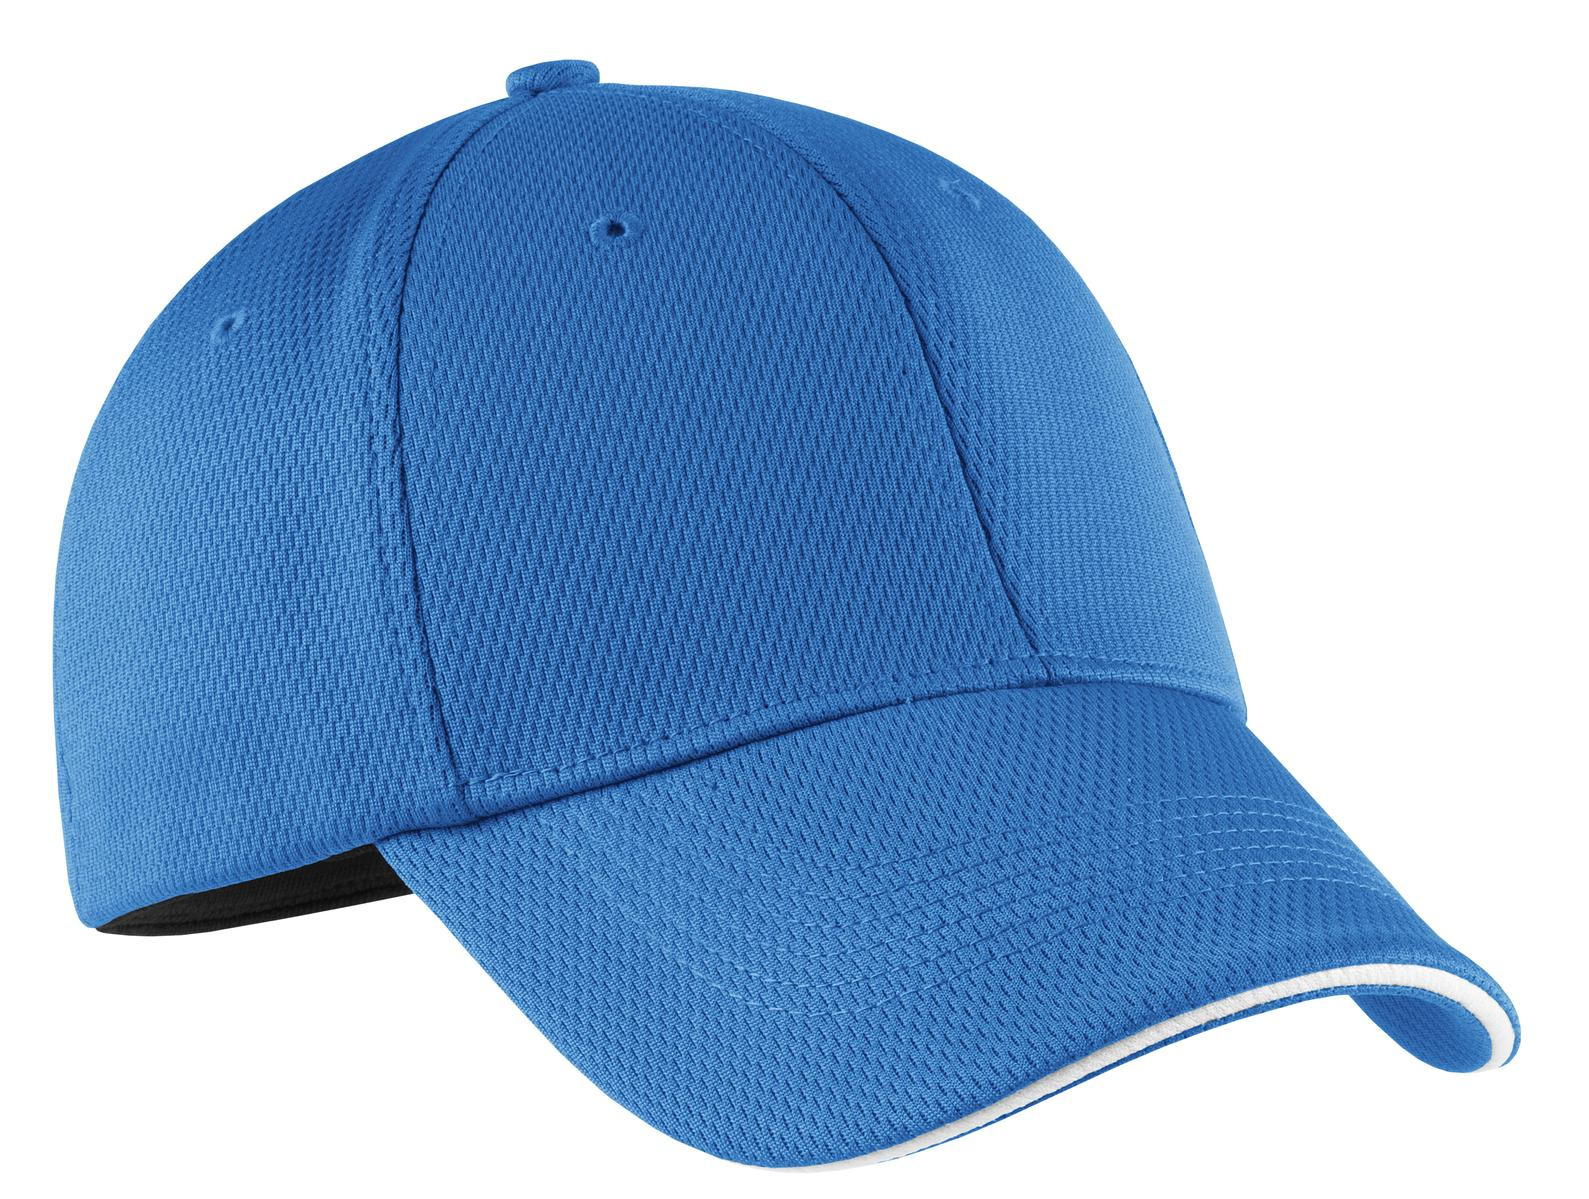 Nike Dri-FIT Mesh Swoosh Flex Sandwich Cap.  333115 - Pacific Blue